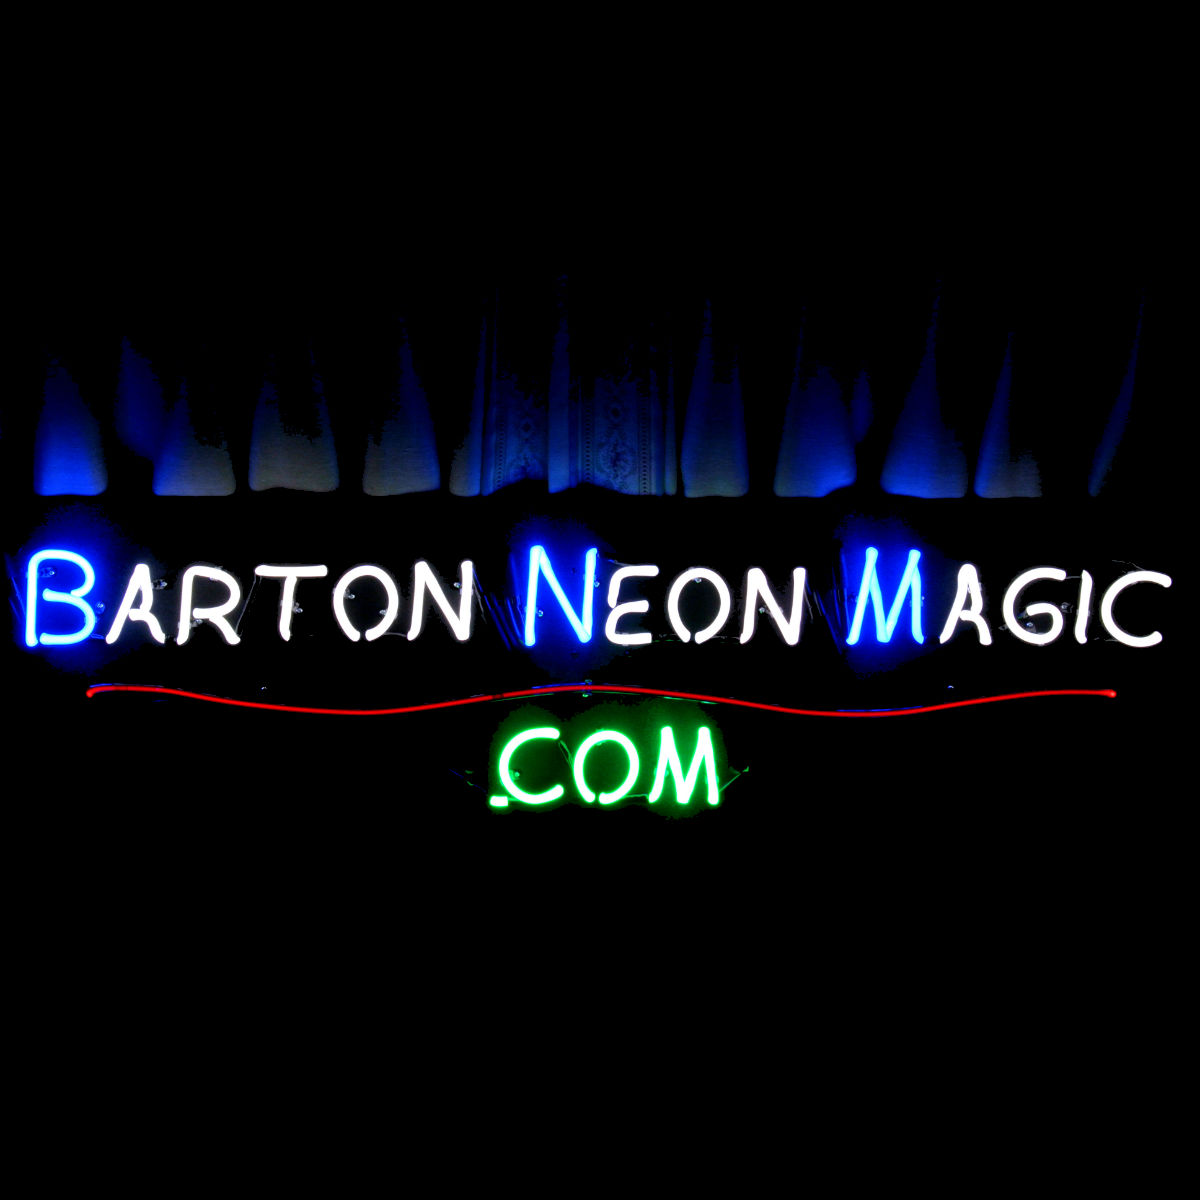 CUSTOM NEON SIGNS - BY JOHN BARTON - FAMOUS USA NEON GLASS ARTIST - BartonNeonMagic.com